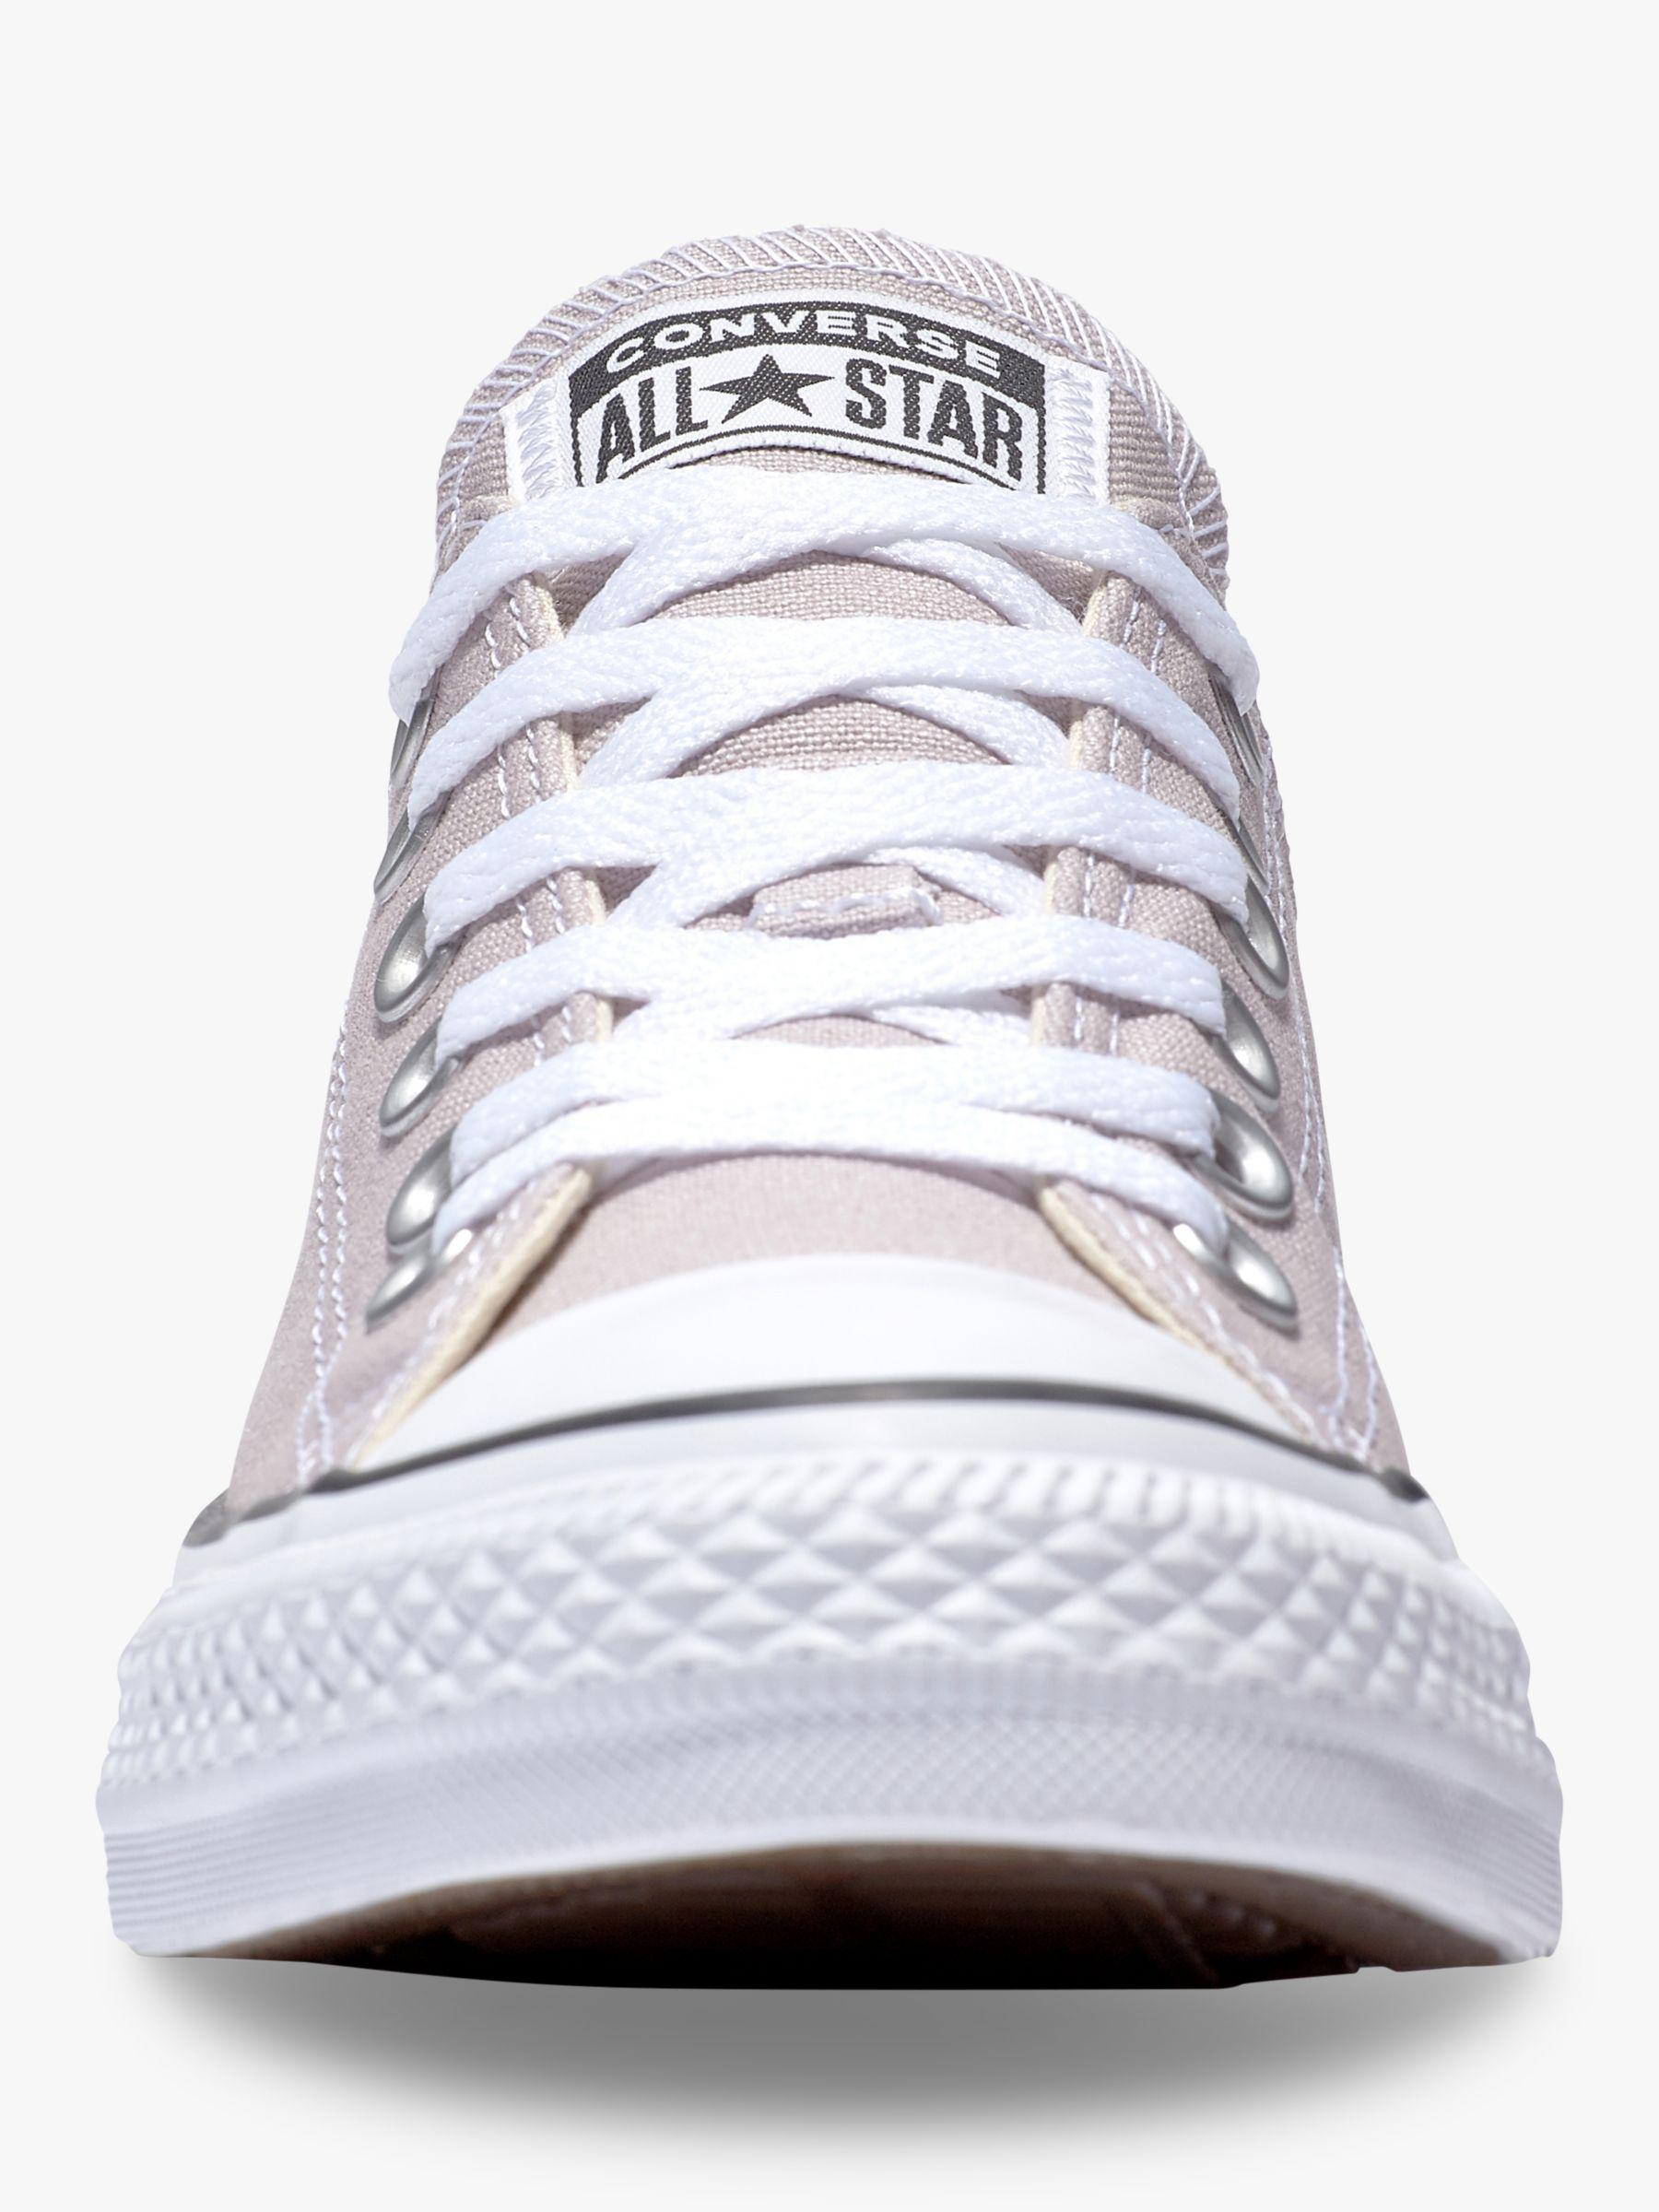 f0606ebe5e84 Converse Chuck Taylor All Star Women s Canvas Low-top Trainers - Lyst